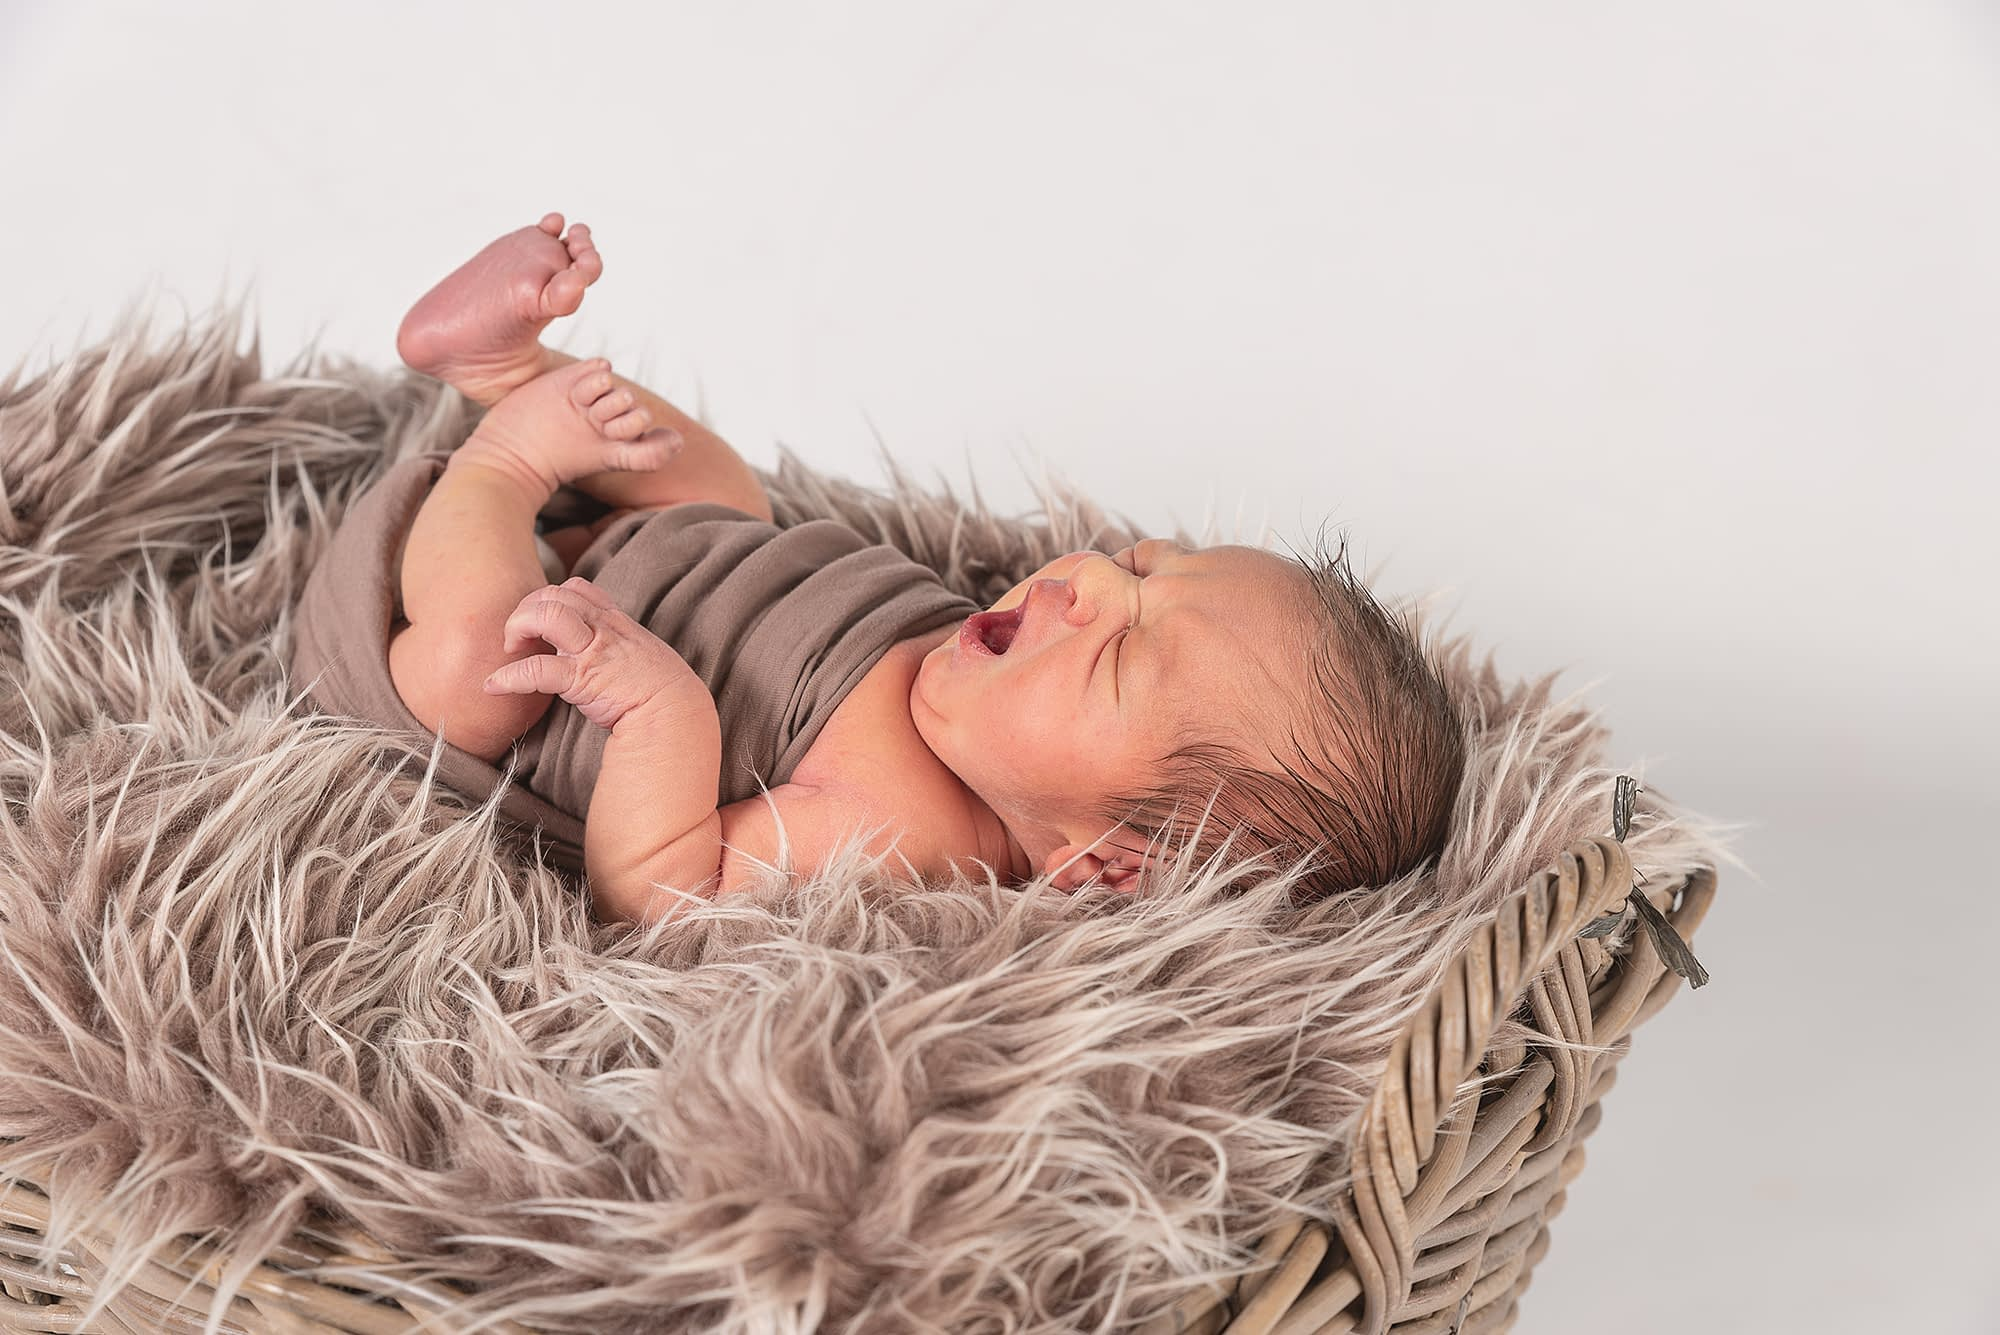 Brown fury blanket in a wicker basket with a newborn baby boy laying on his back wrapped in a brown fabric with feet and arms showing. Baby is yawning and the background is white